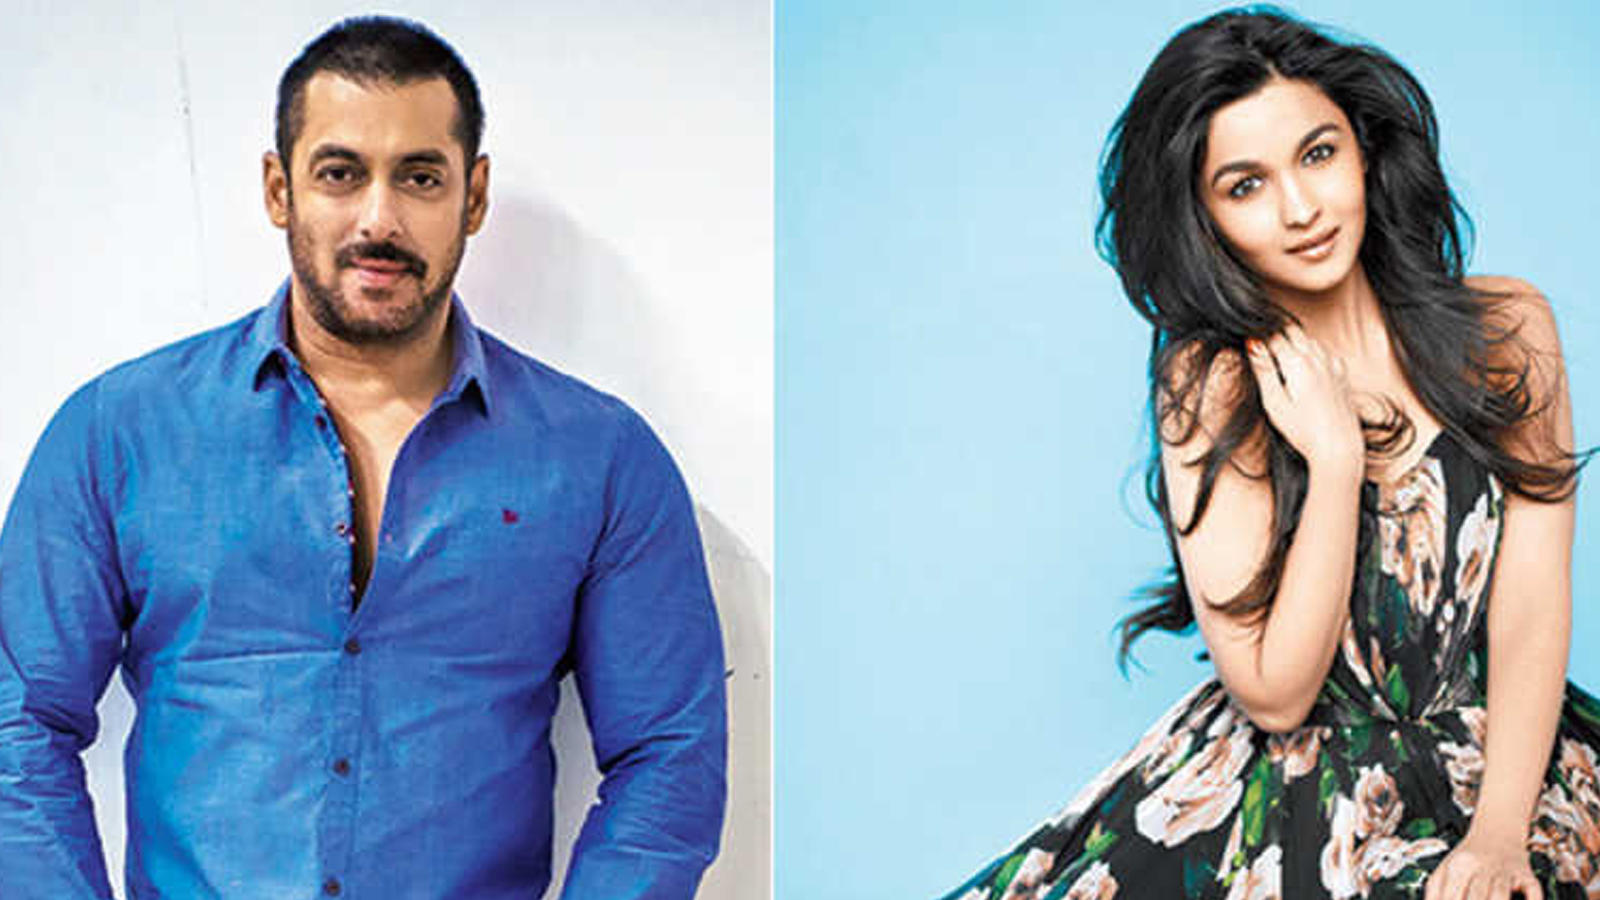 'Inshallah': Alia Bhatt and Salman Khan's character details are out